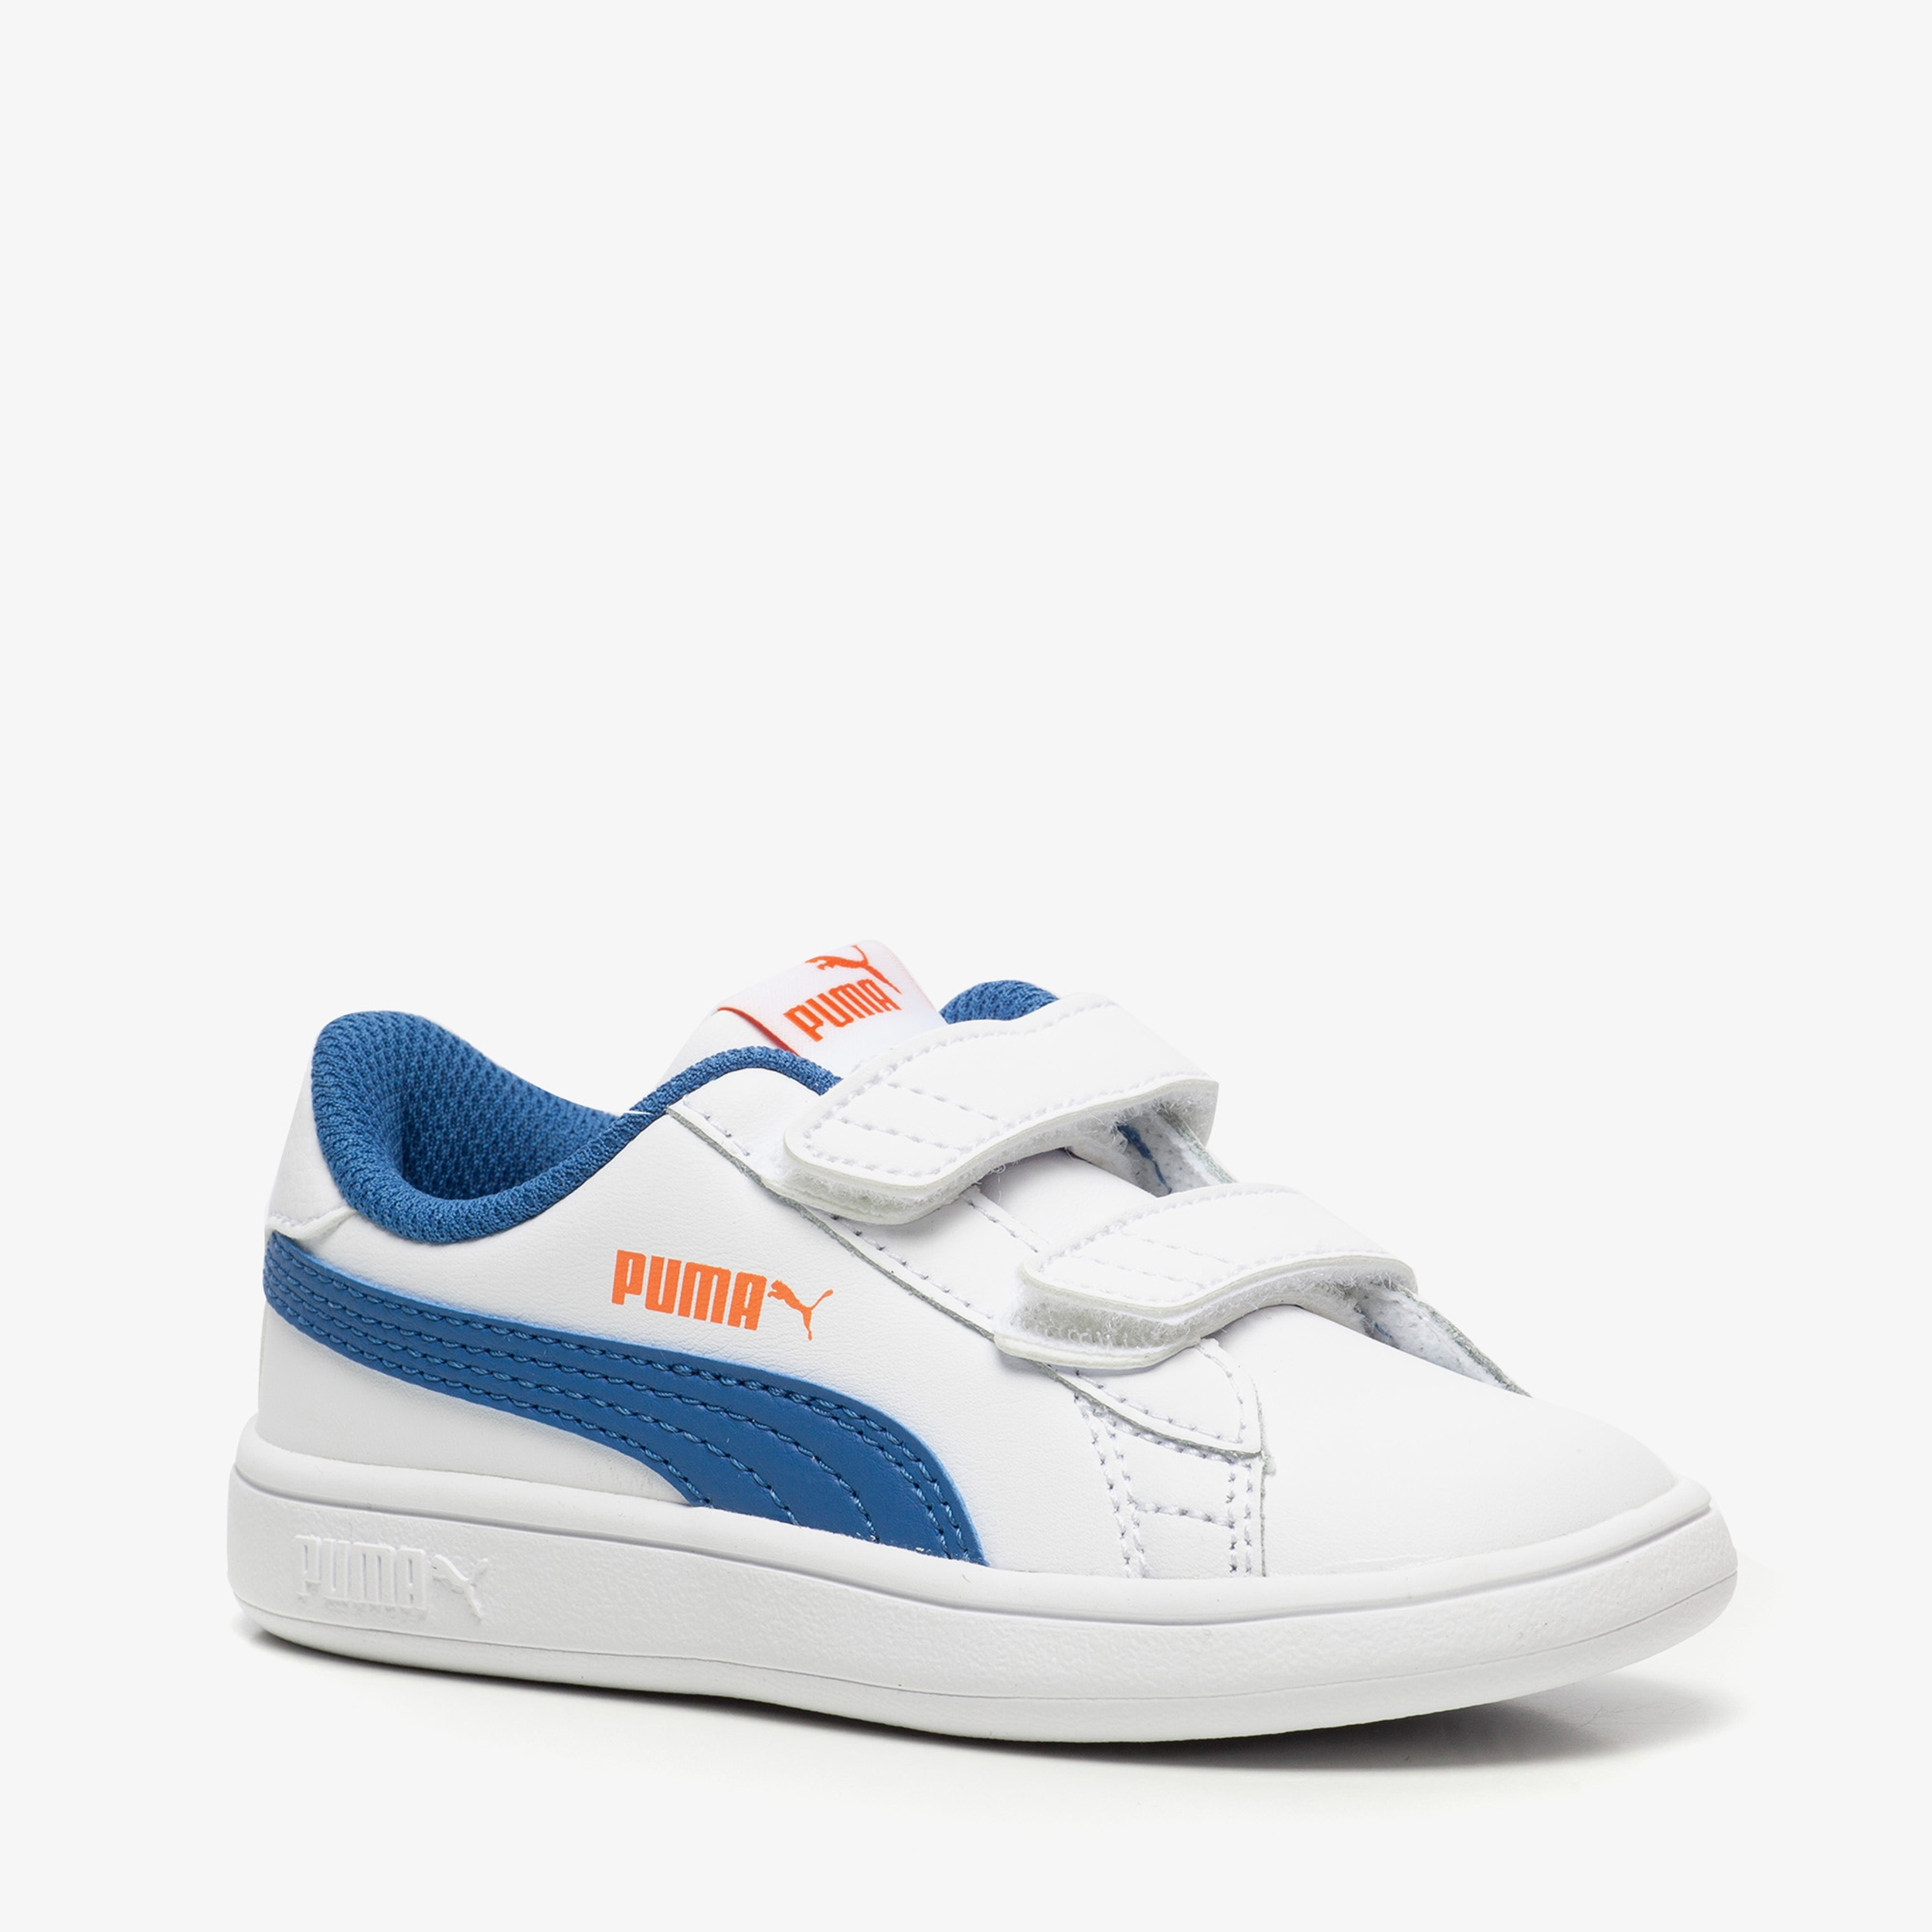 Puma Smash V2 INF kinder sneakers | Scapino.nl